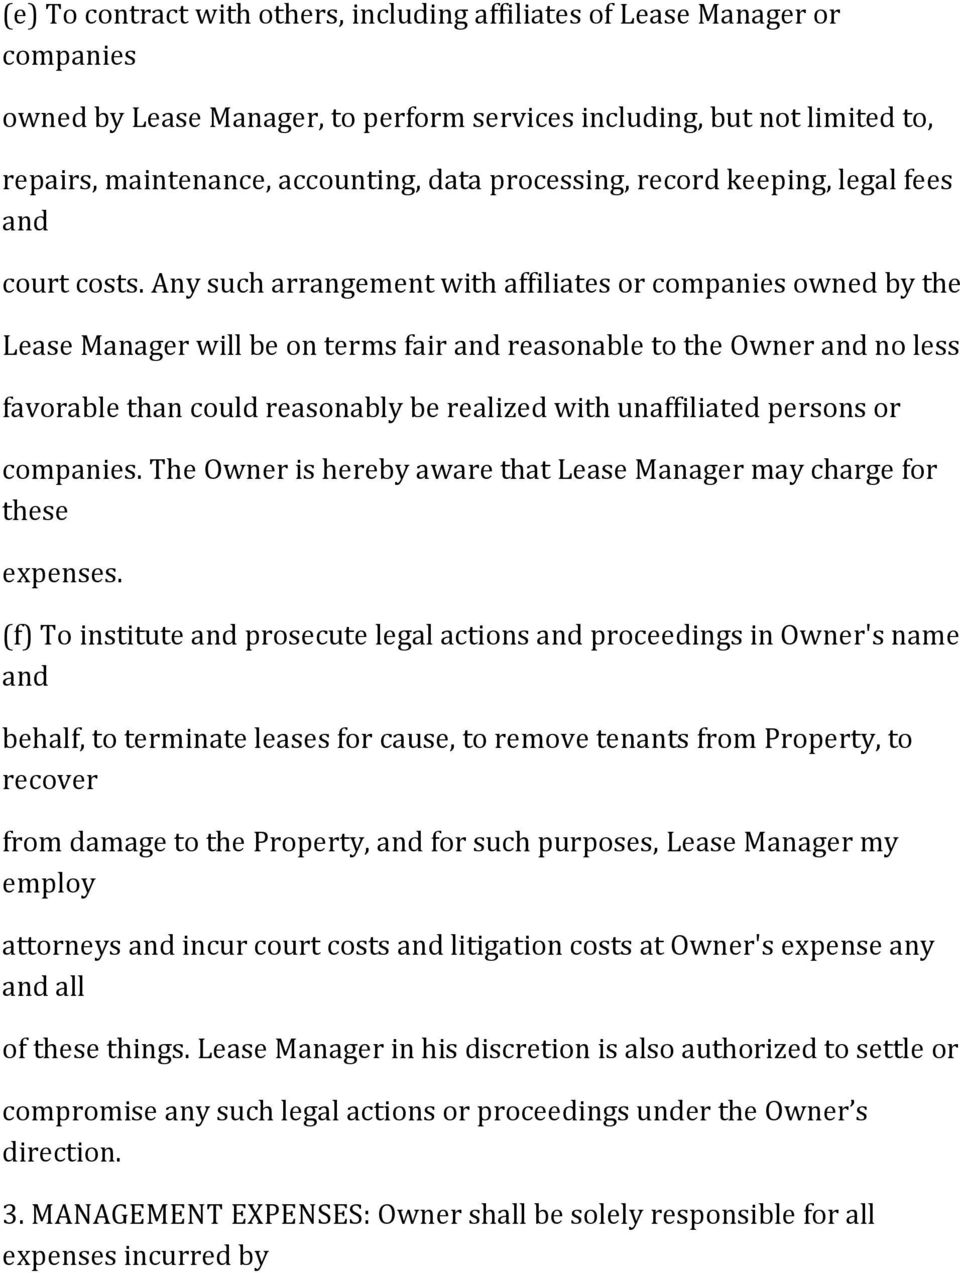 Any such arrangement with affiliates or companies owned by the Lease Manager will be on terms fair and reasonable to the Owner and no less favorable than could reasonably be realized with